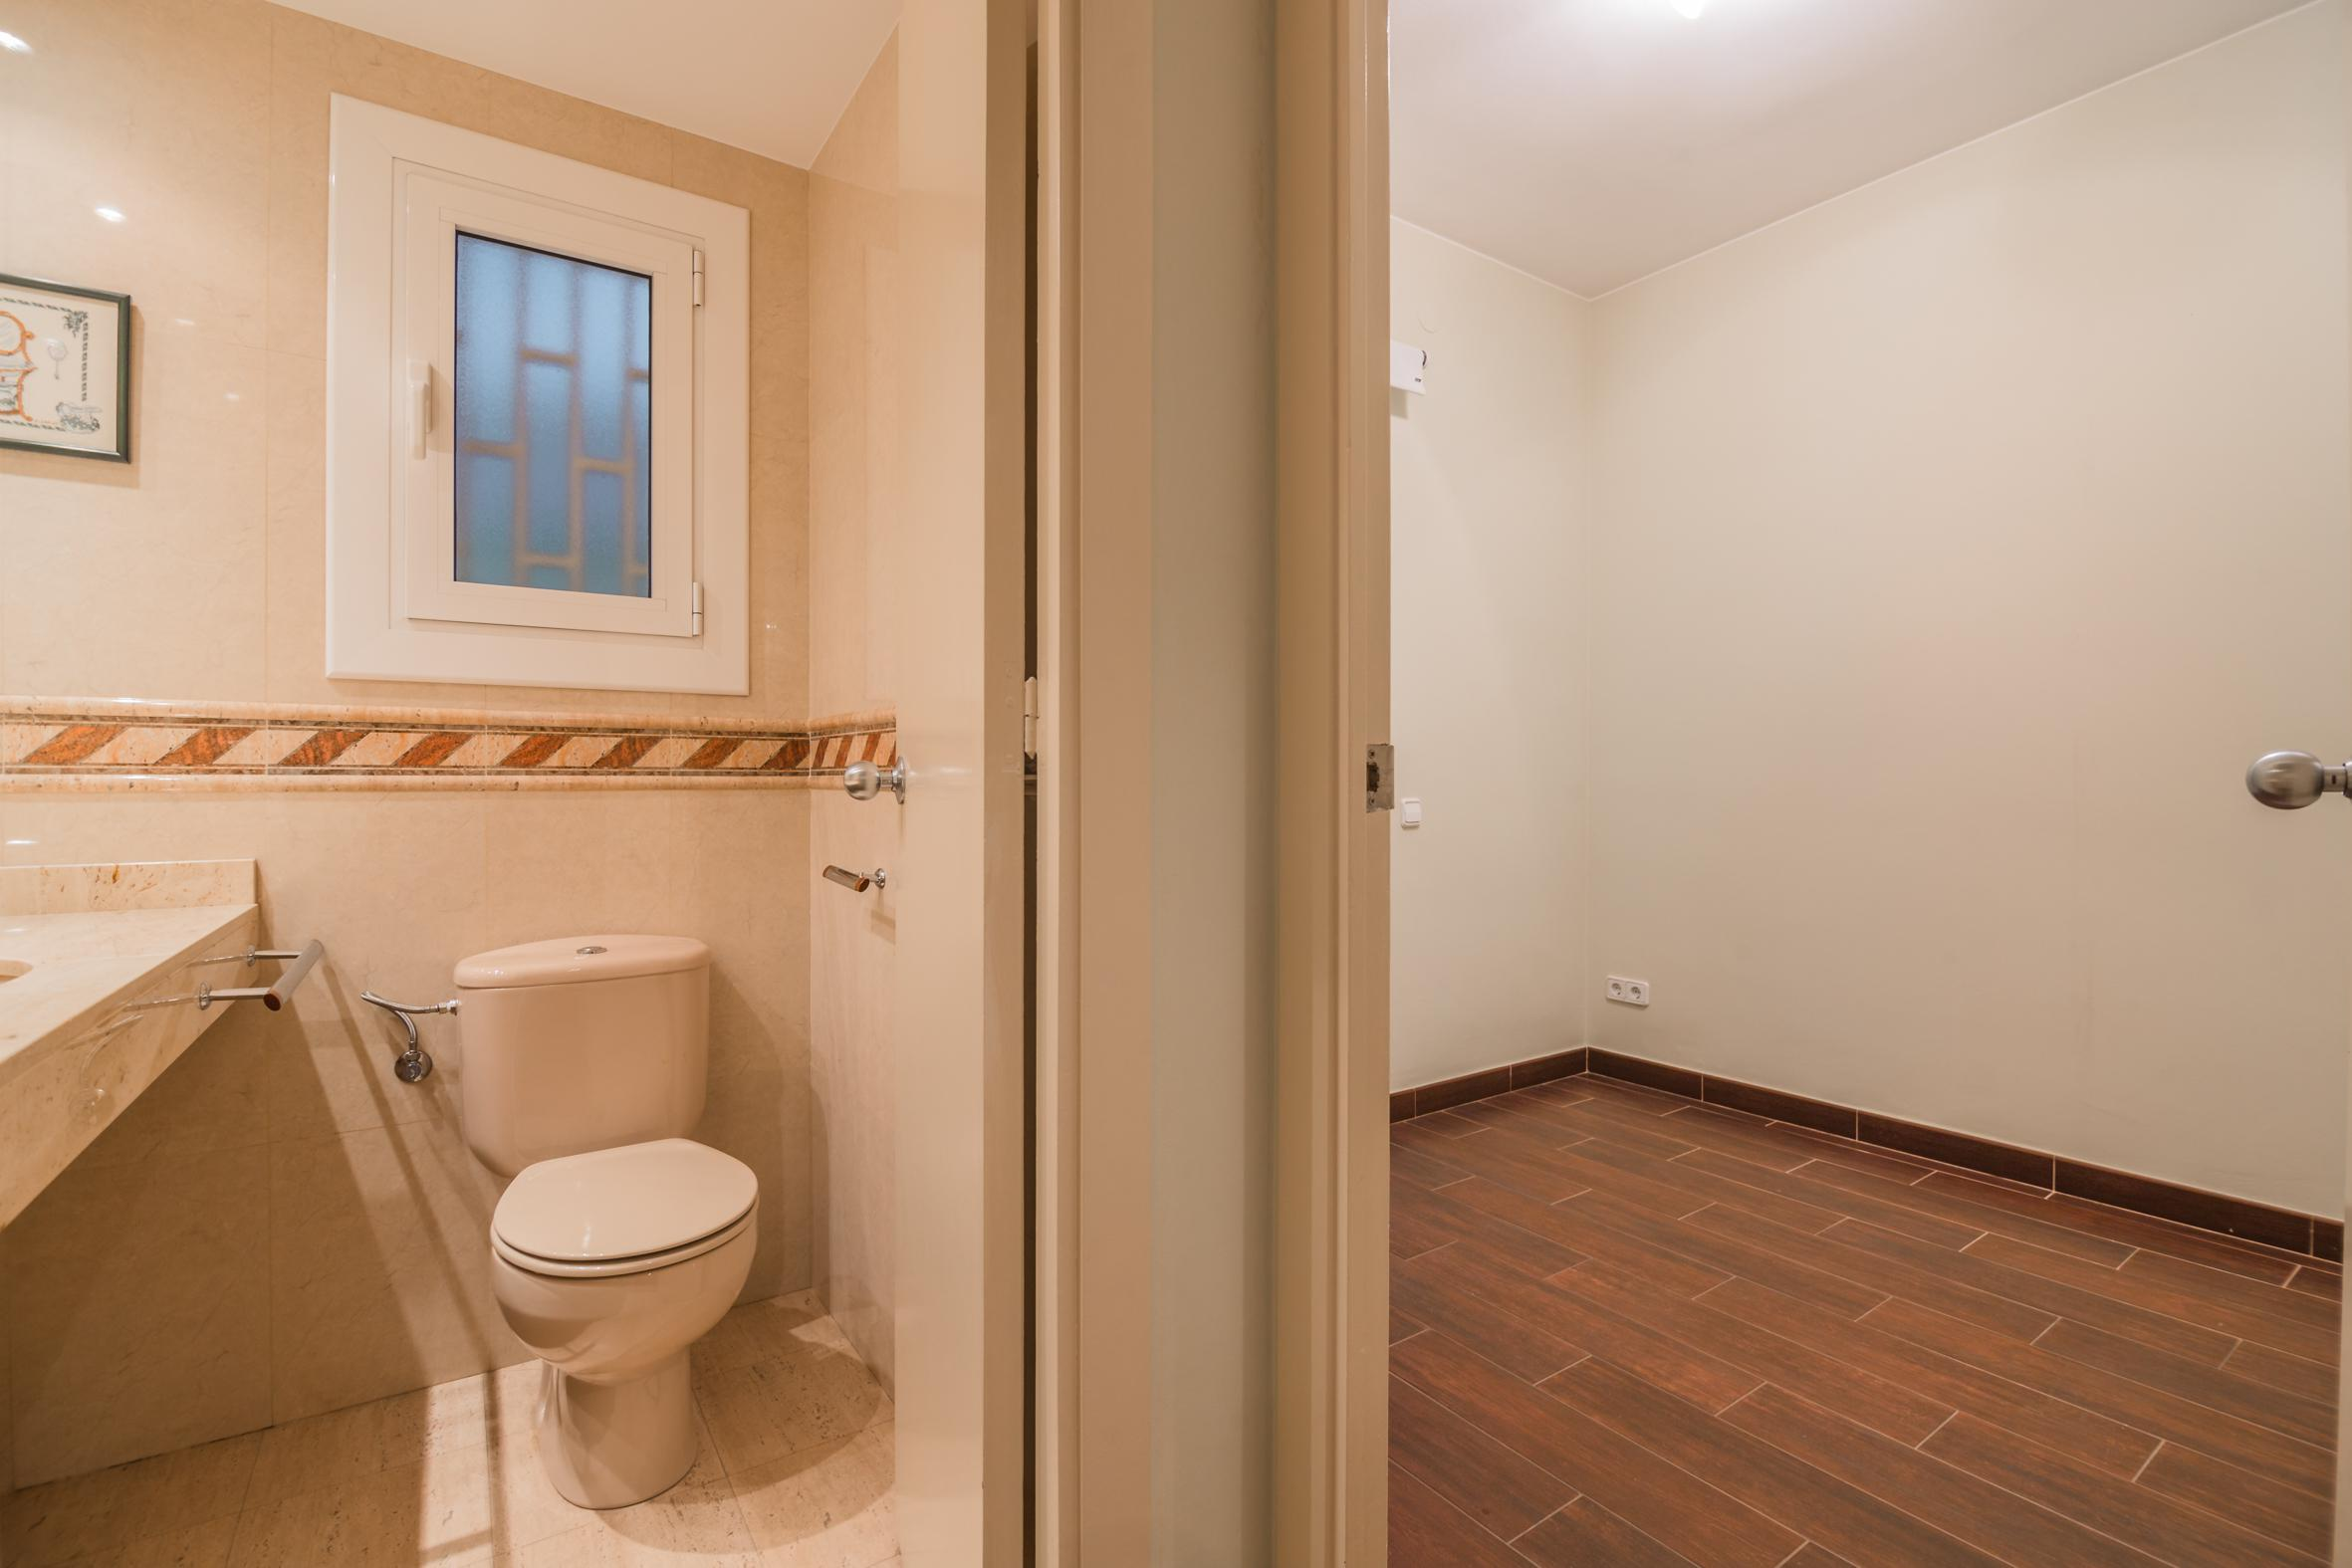 246902 Flat for sale in Les Corts, Pedralbes 23